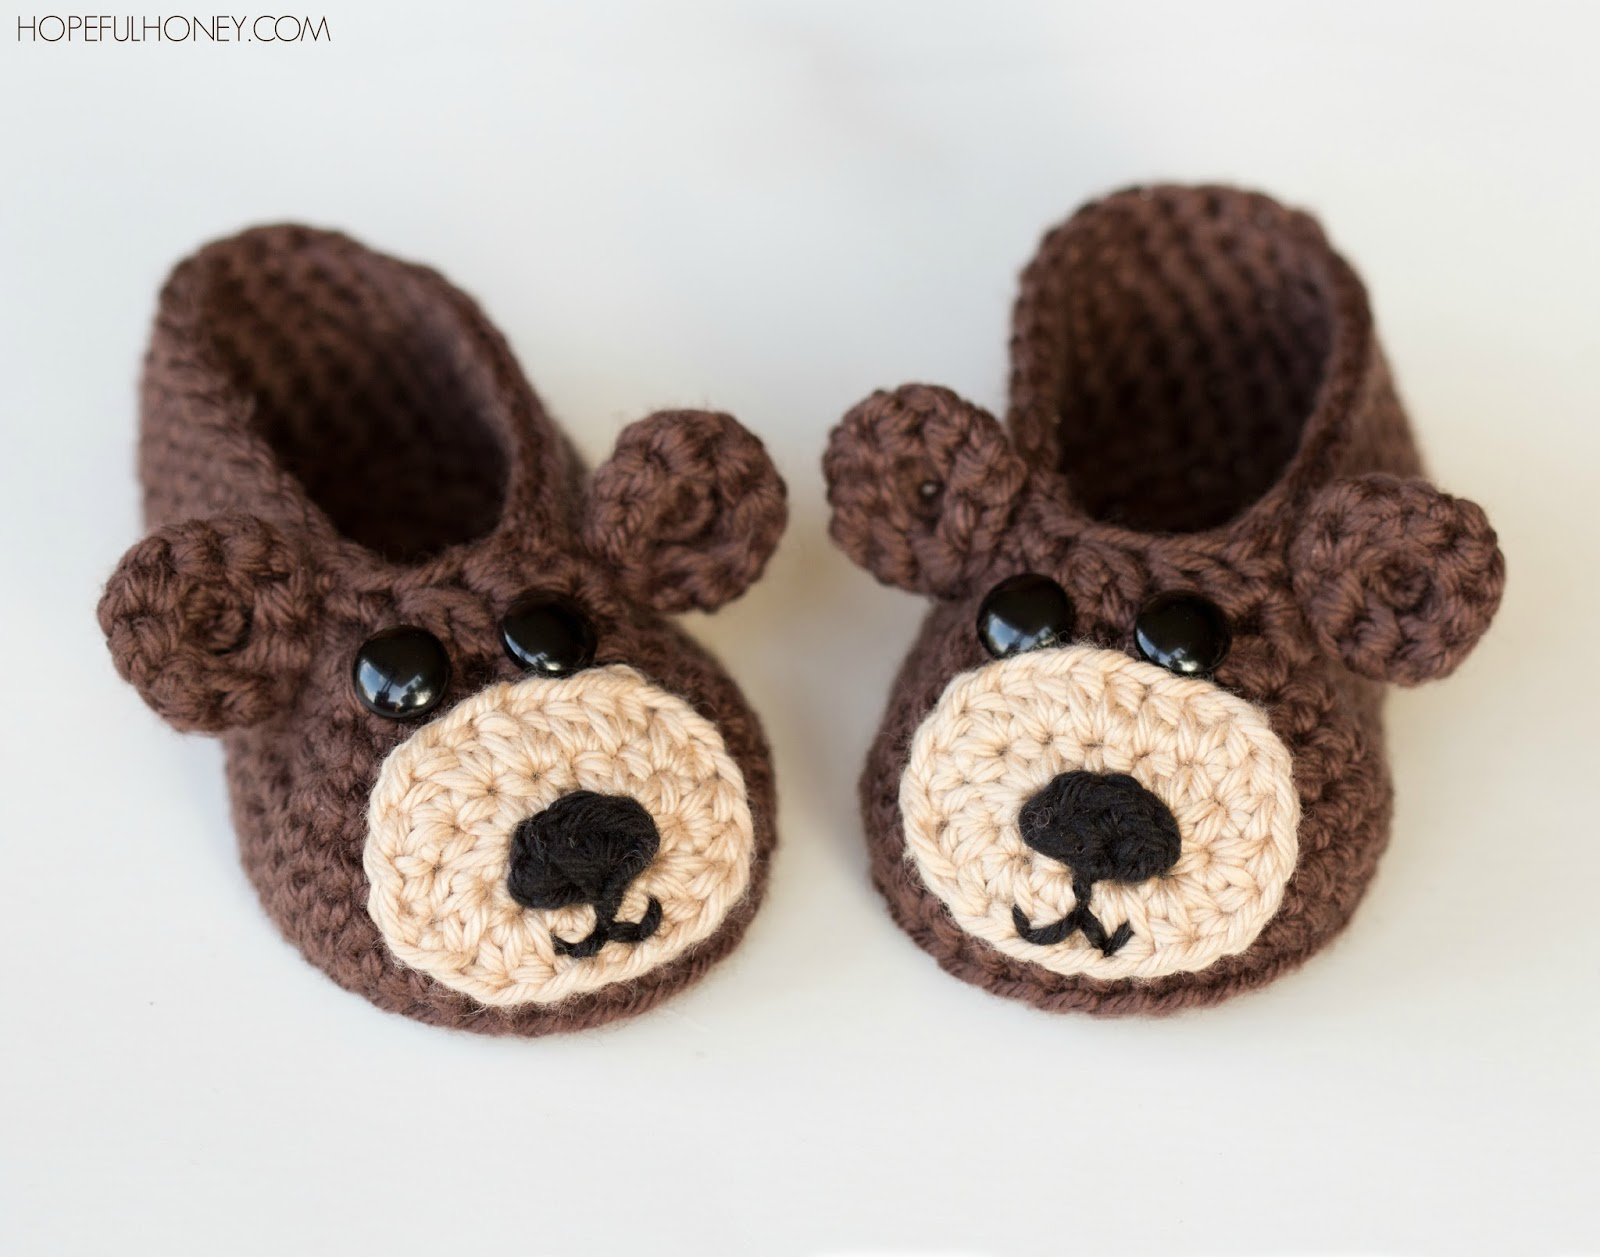 Crochet Baby Teddy Bear Hat Pattern : Hopeful Honey Craft, Crochet, Create: Teddy Bear Baby ...